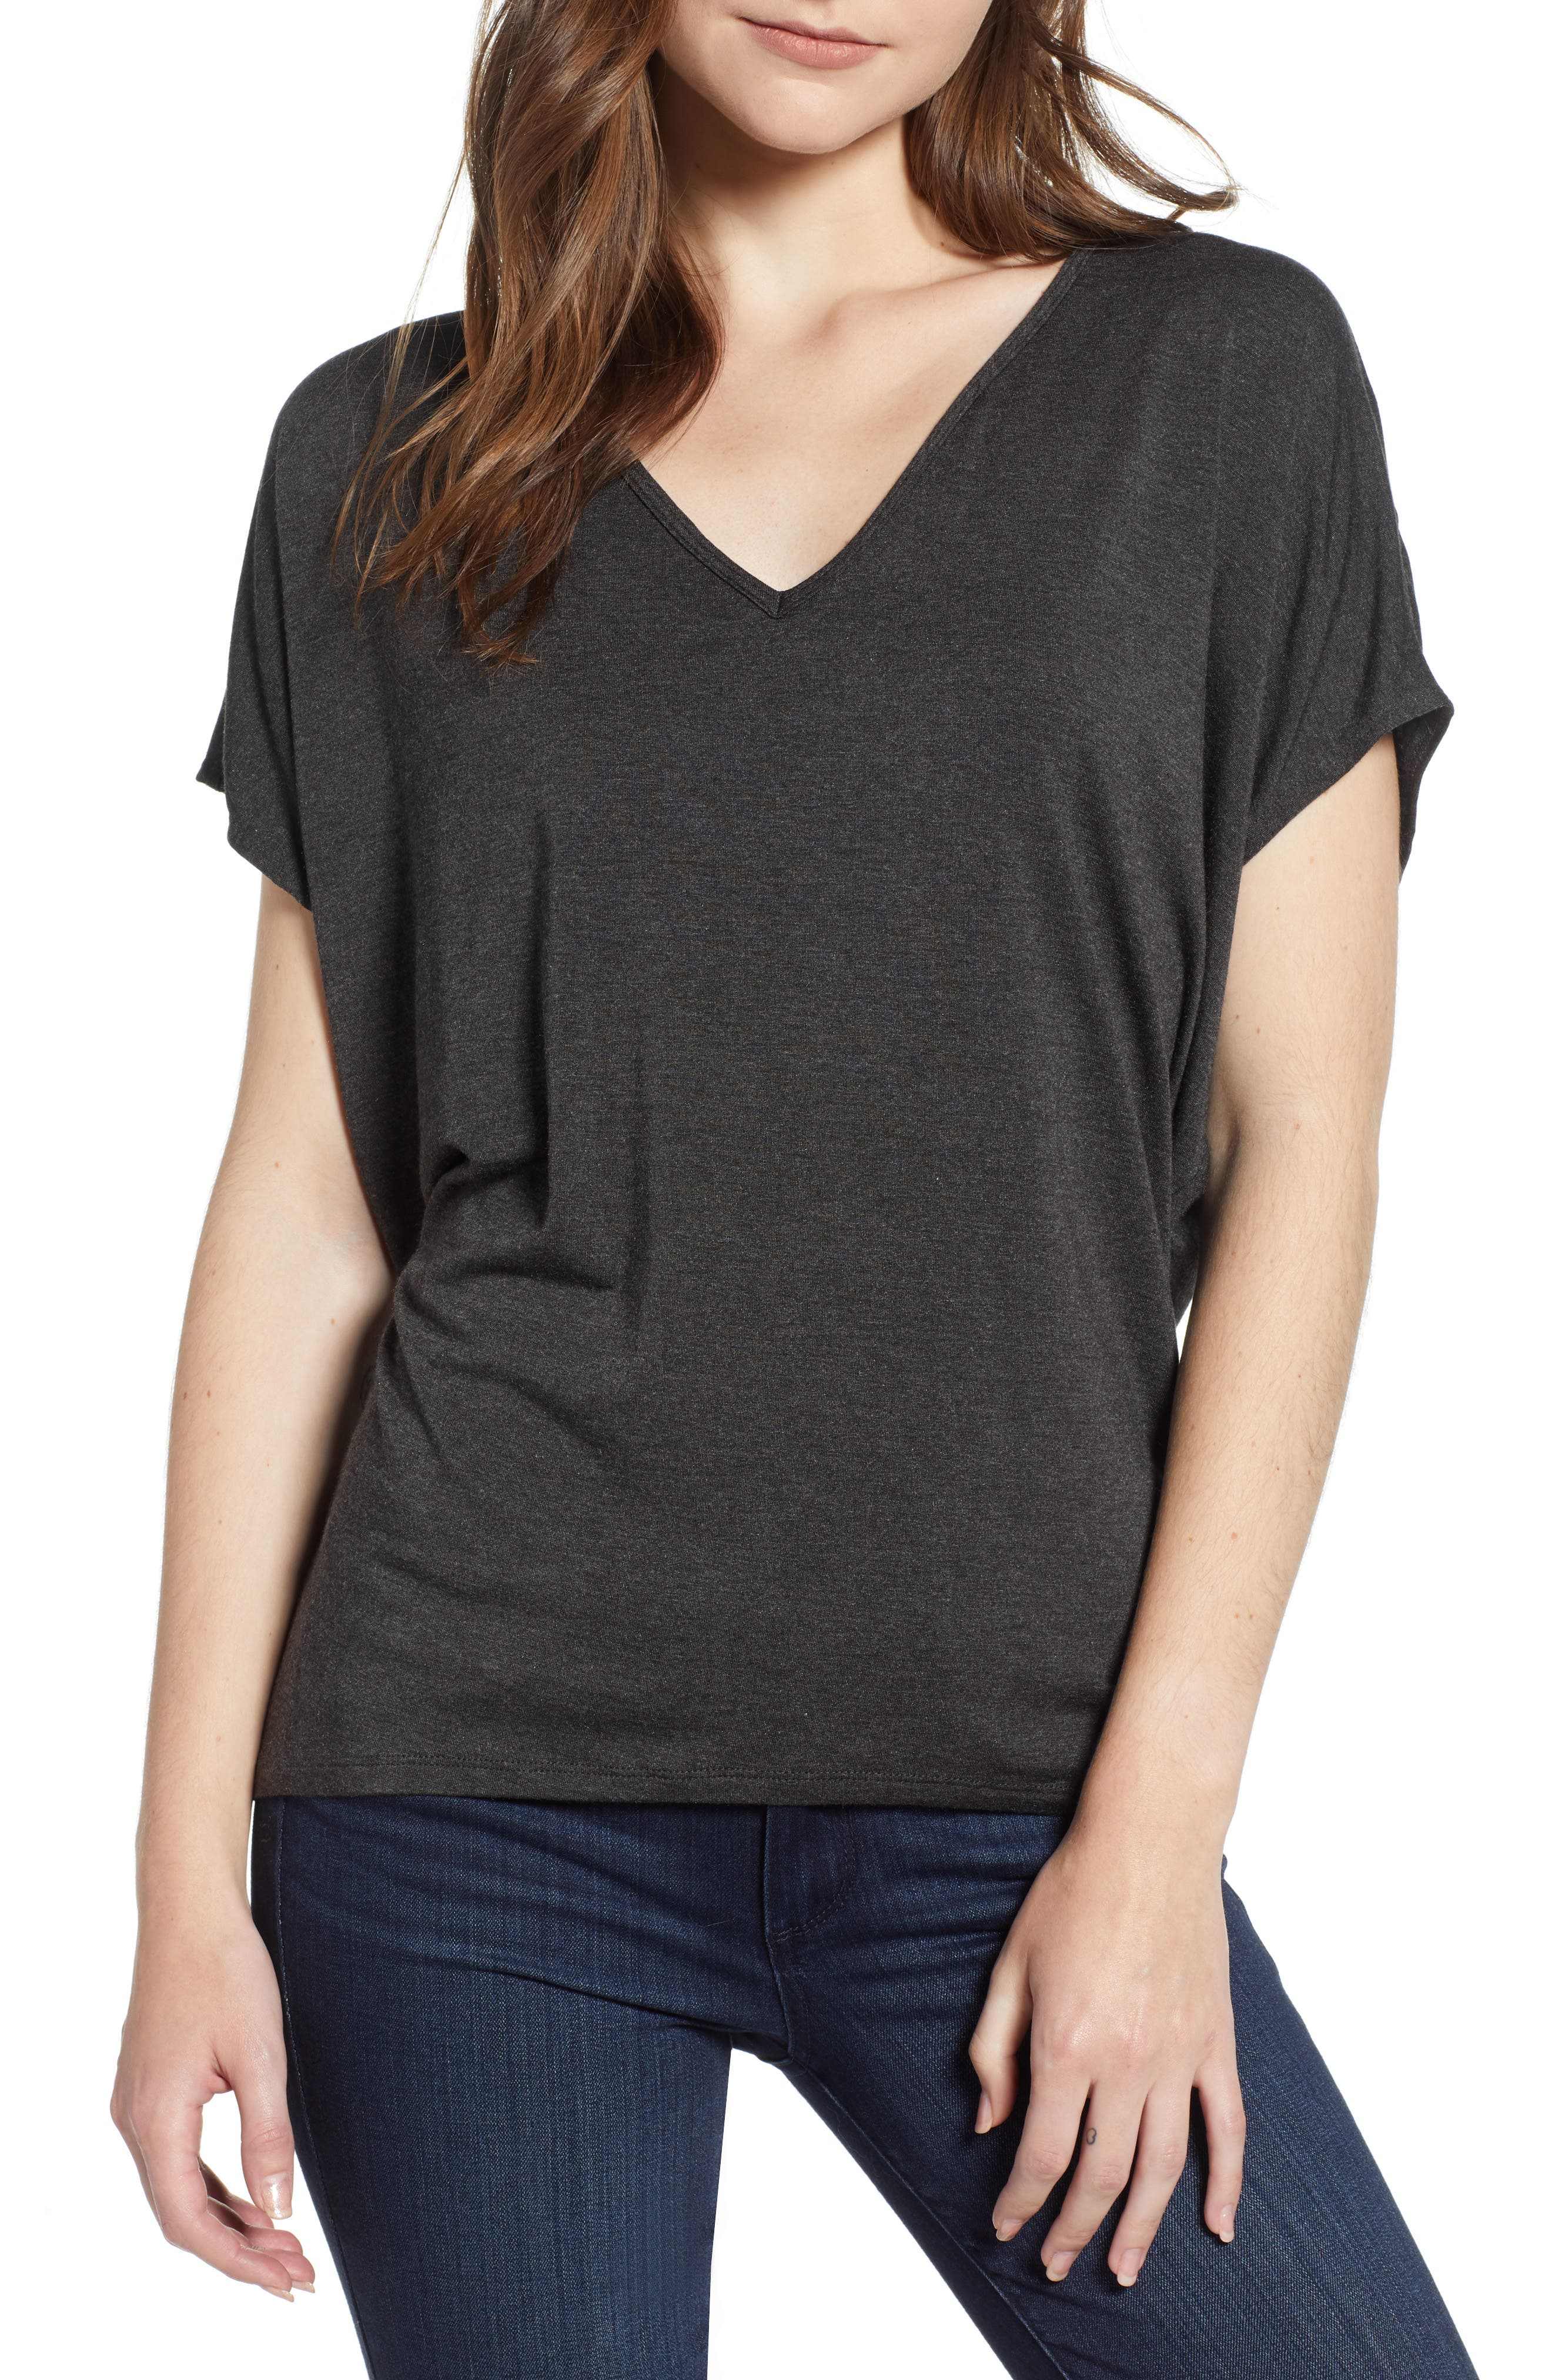 AMOUR VERT 'Mayr' V-Neck Tee in Anthracite